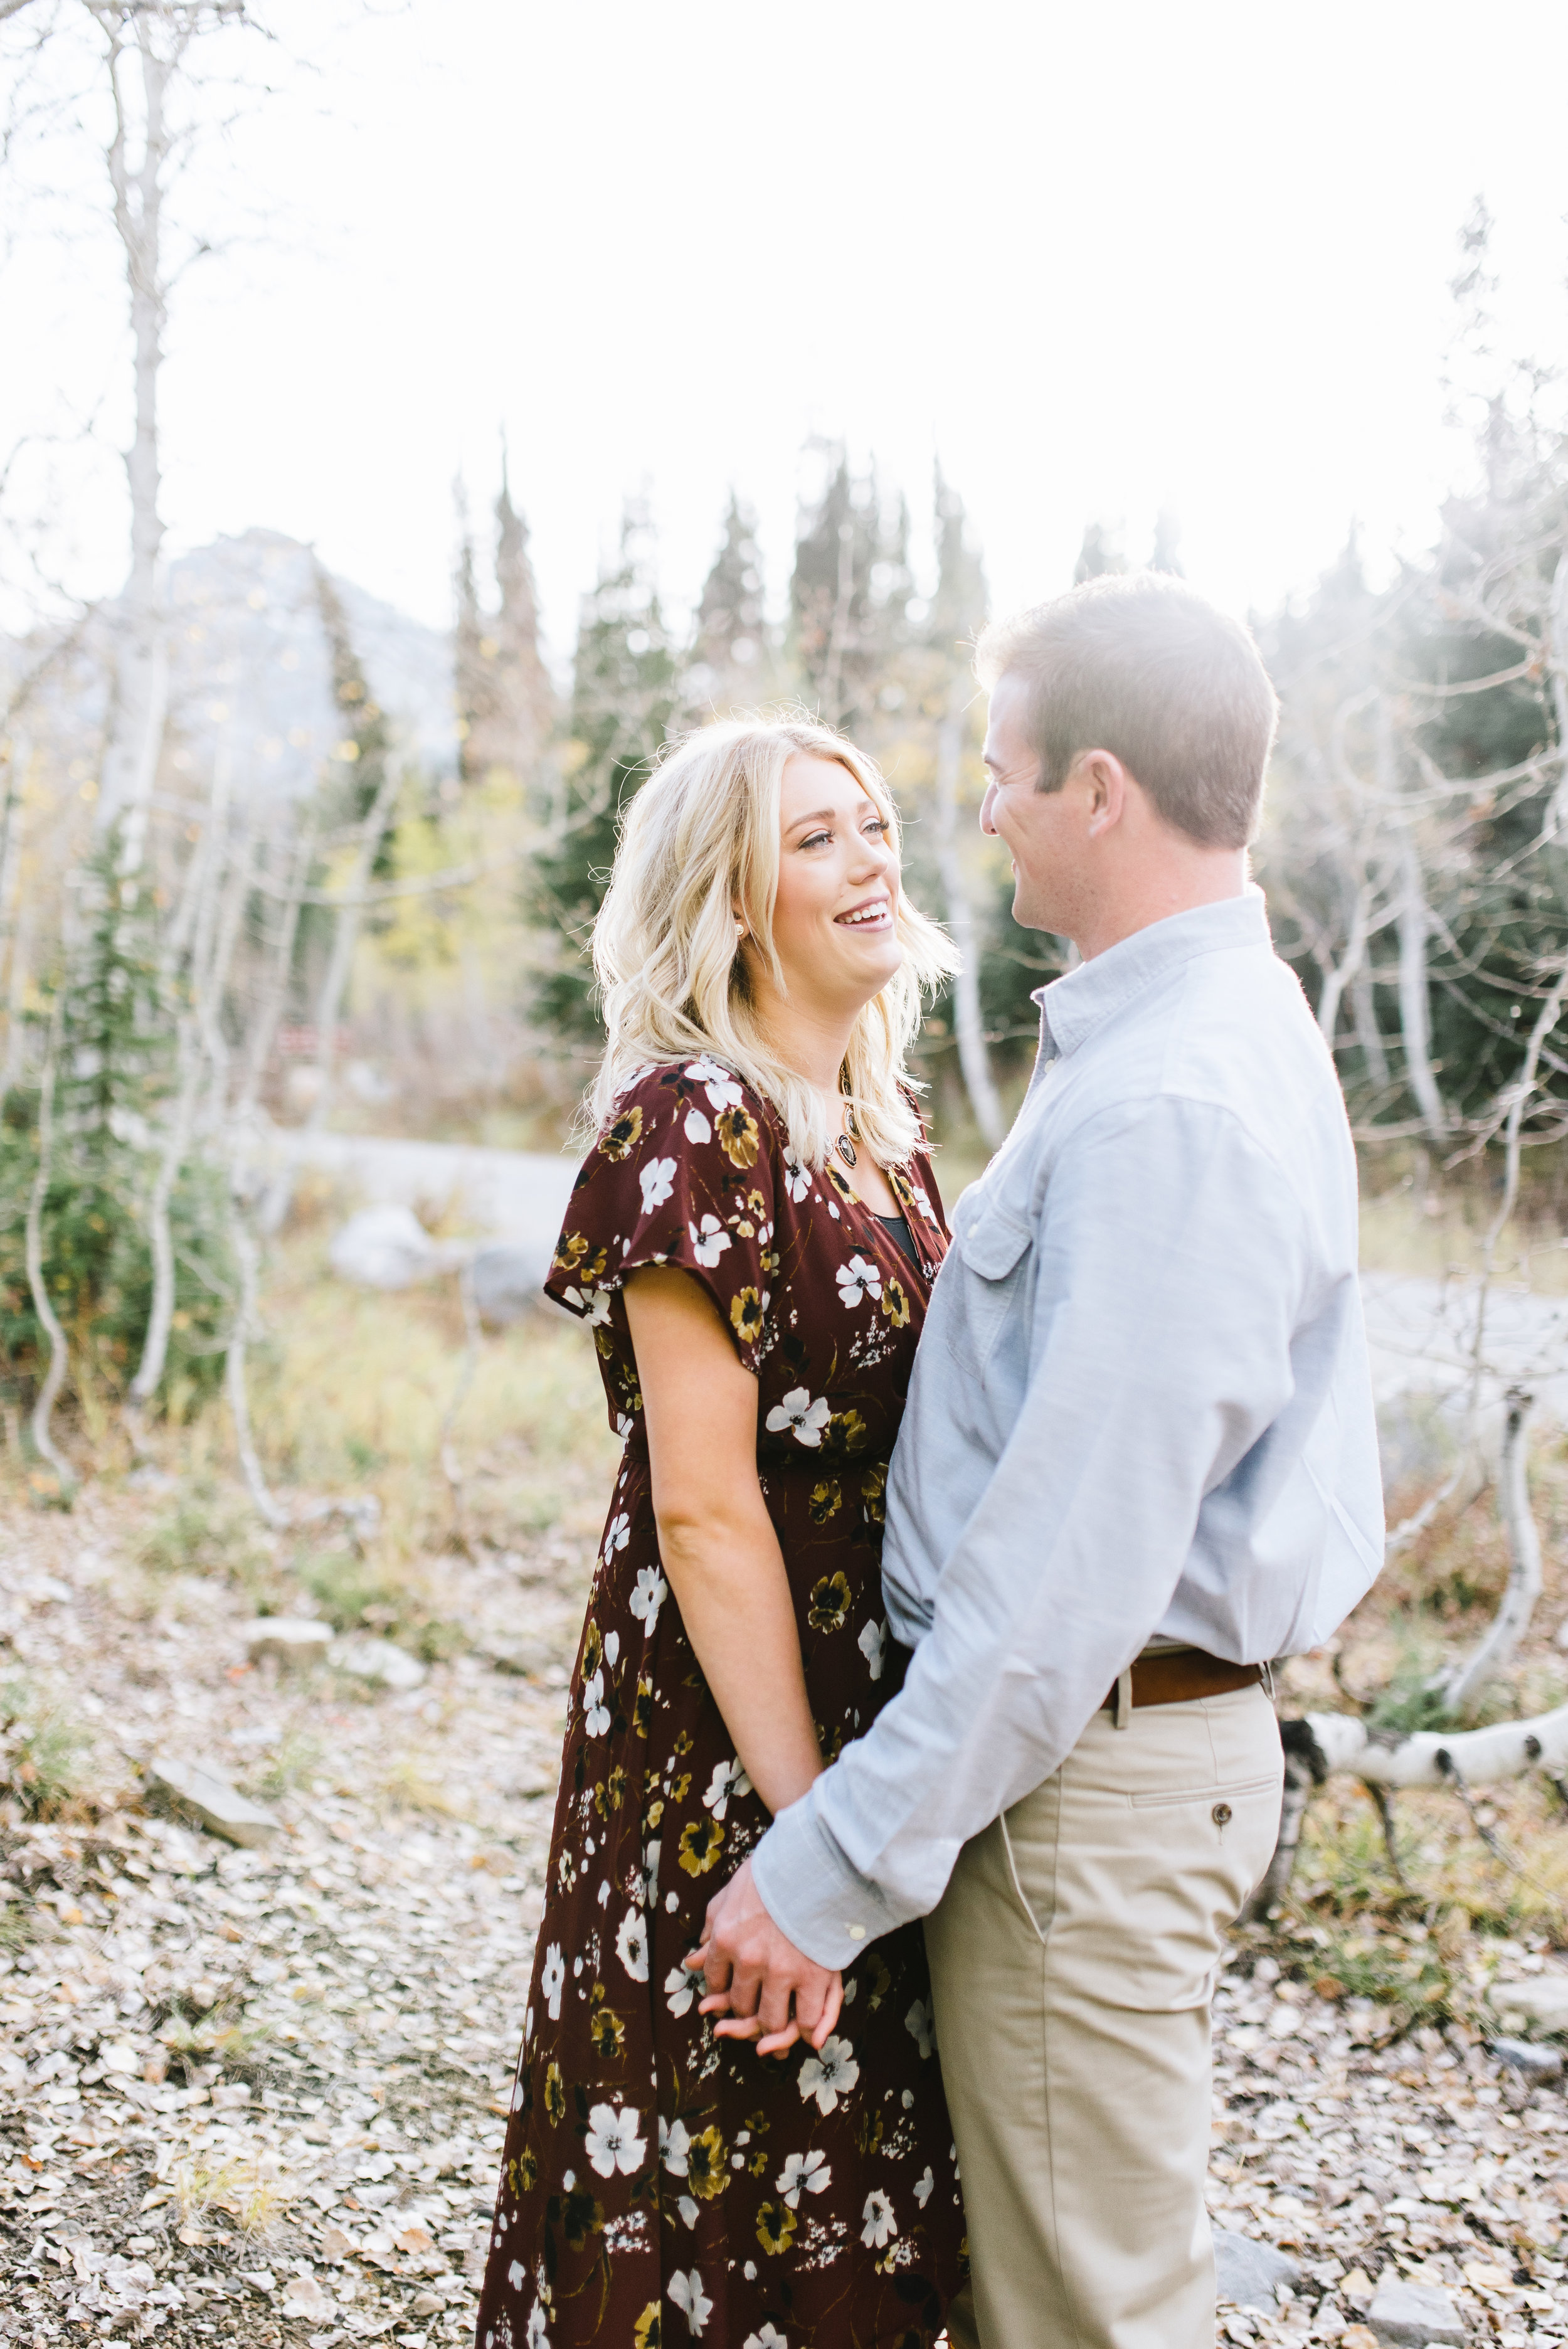 Taylor+Joe Engagements-6.jpg